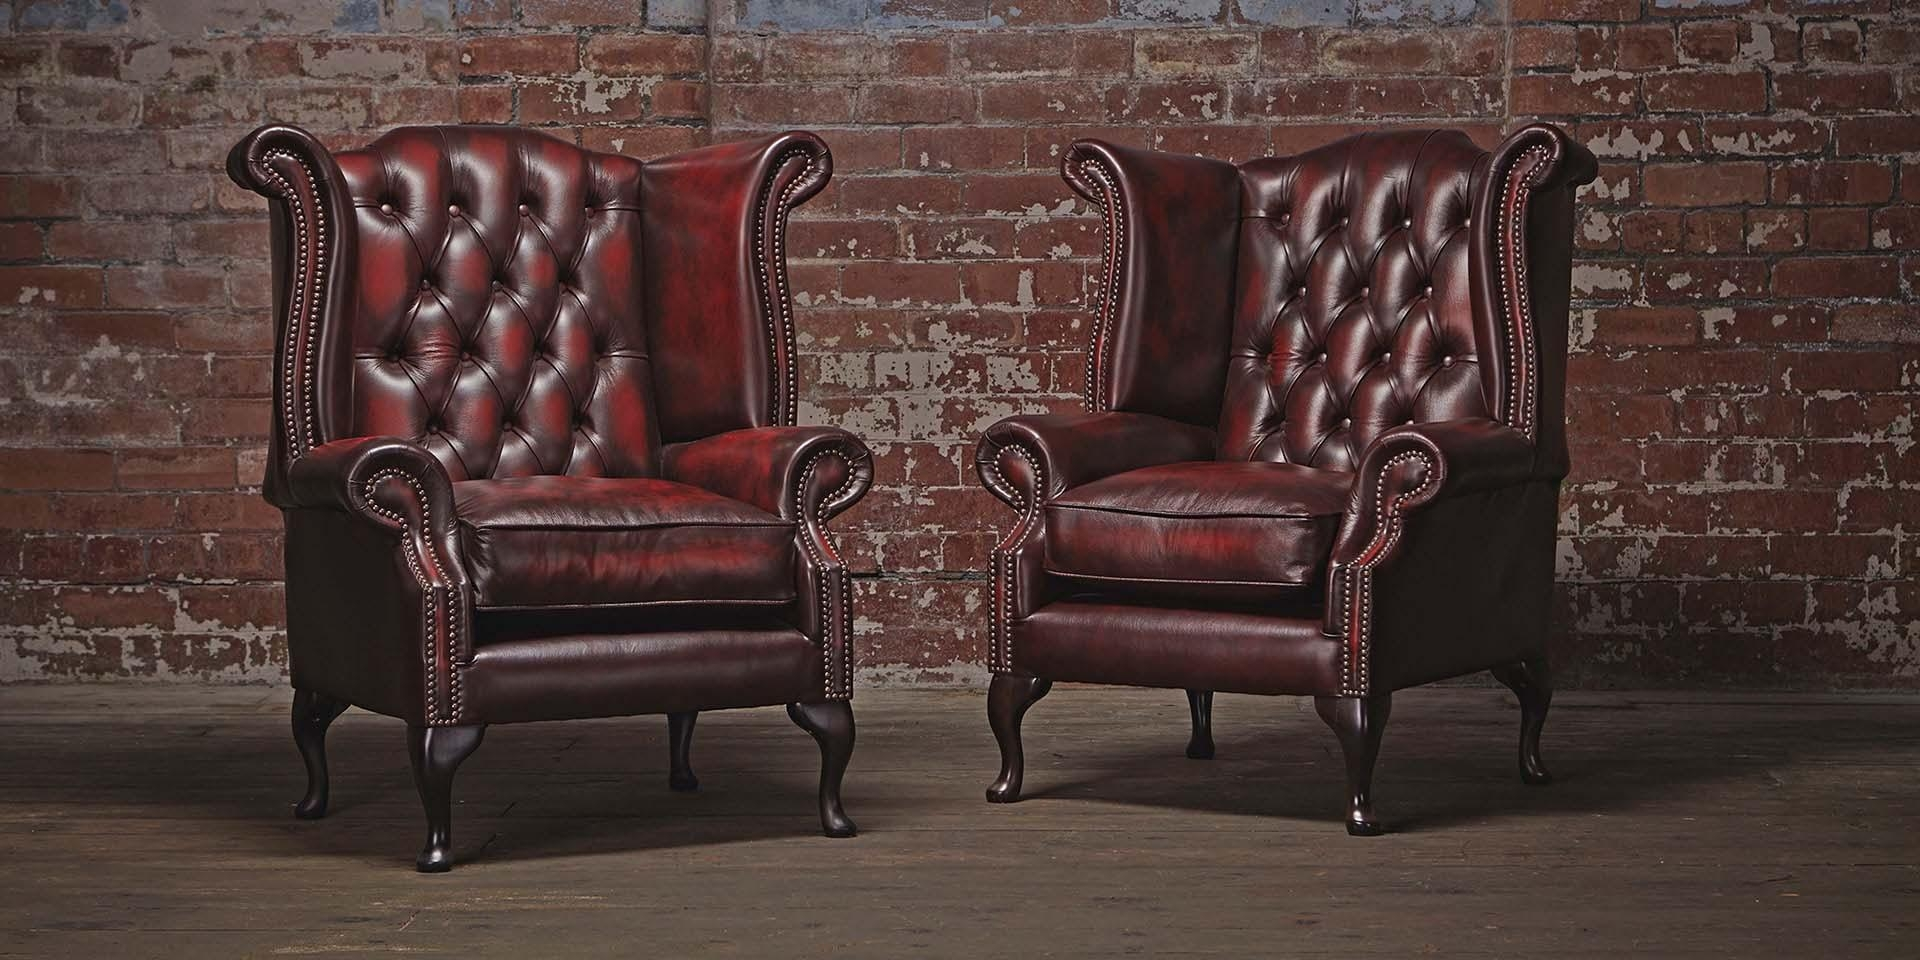 Chesterfields Of England   The Original Chesterfield Company Intended For Chesterfield Sofa And Chairs (View 3 of 20)